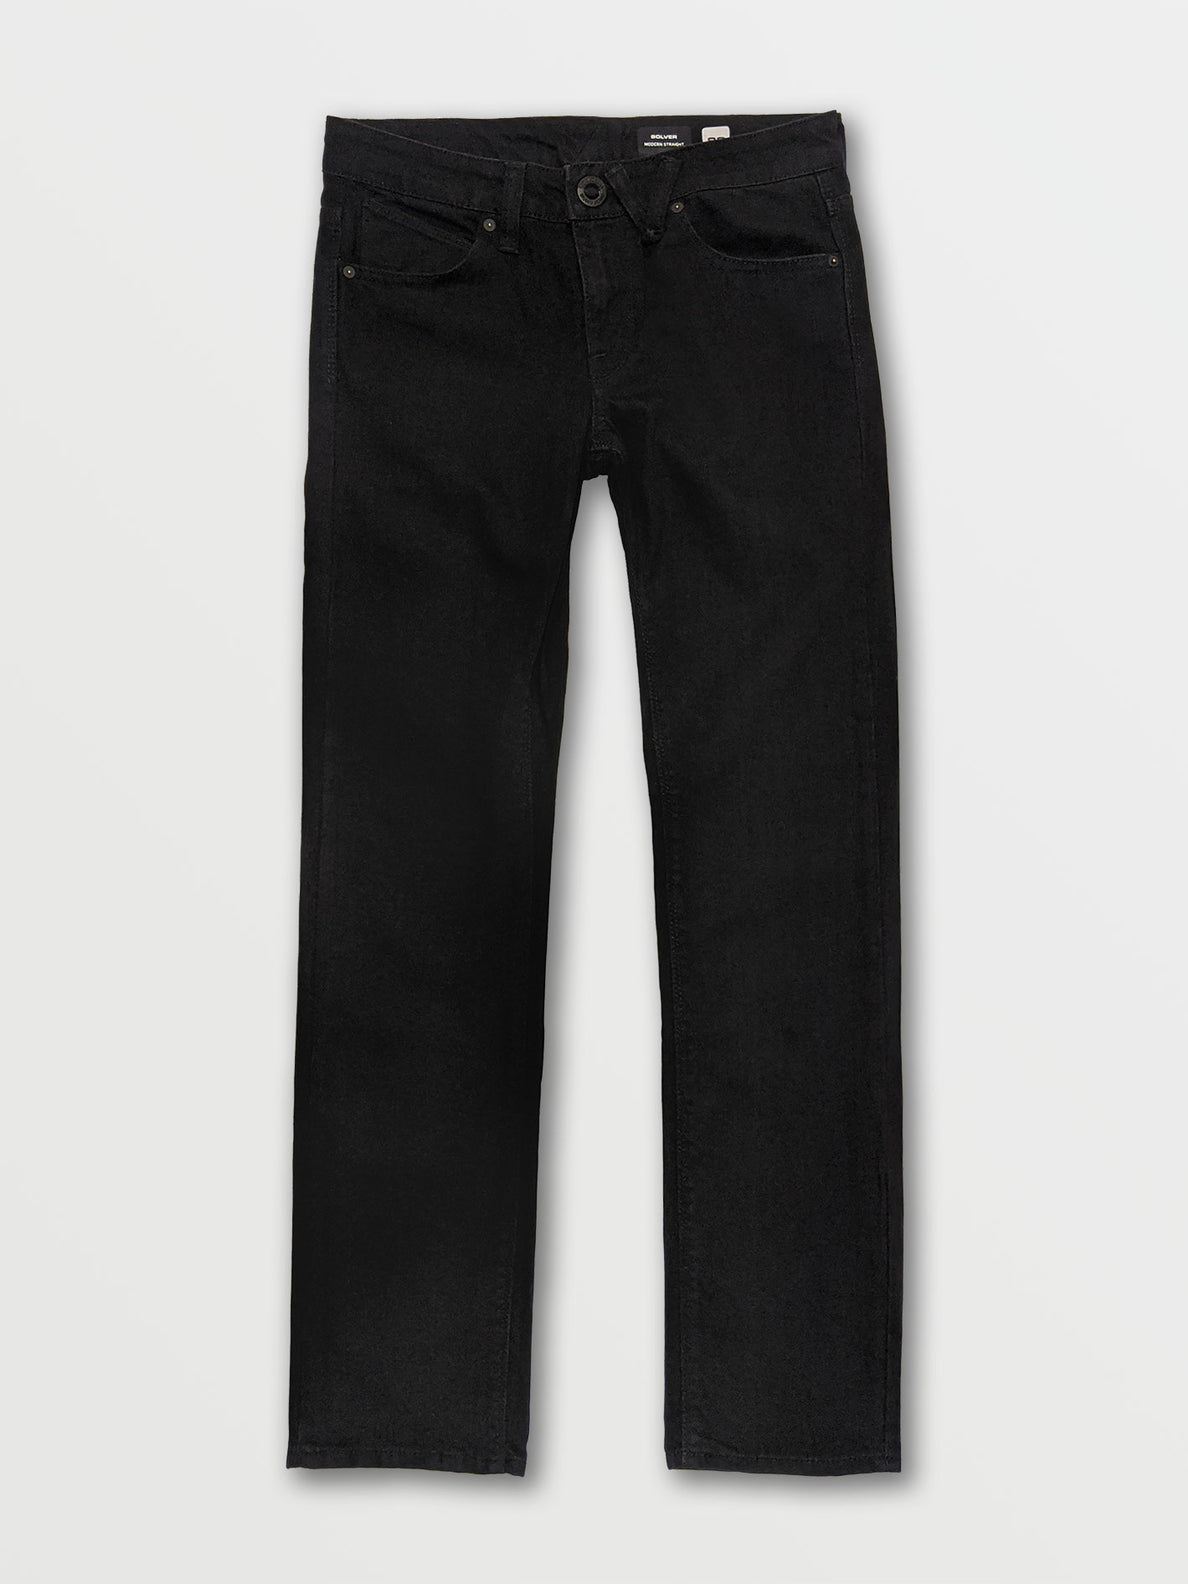 V Modern Stretch Jeans - Black